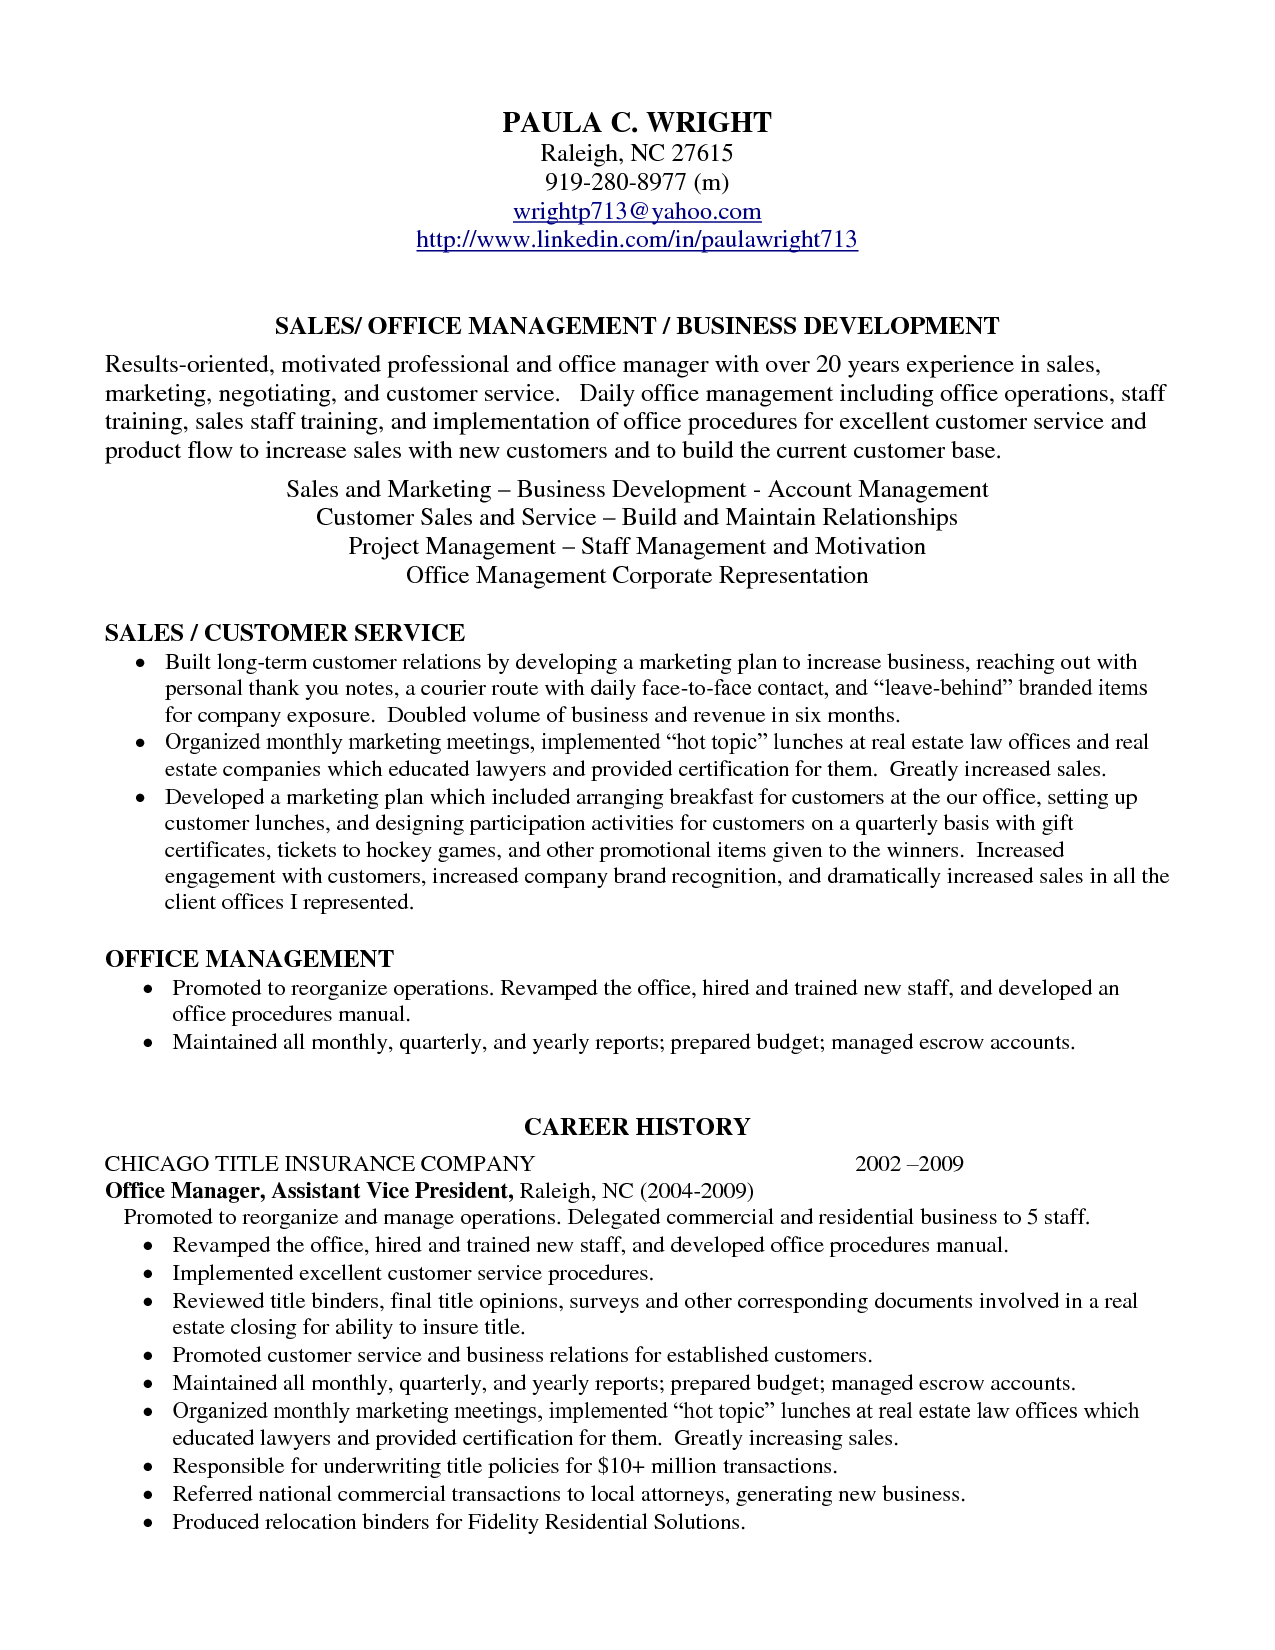 Examples Of Professional Profiles Resume Profile Summary Example